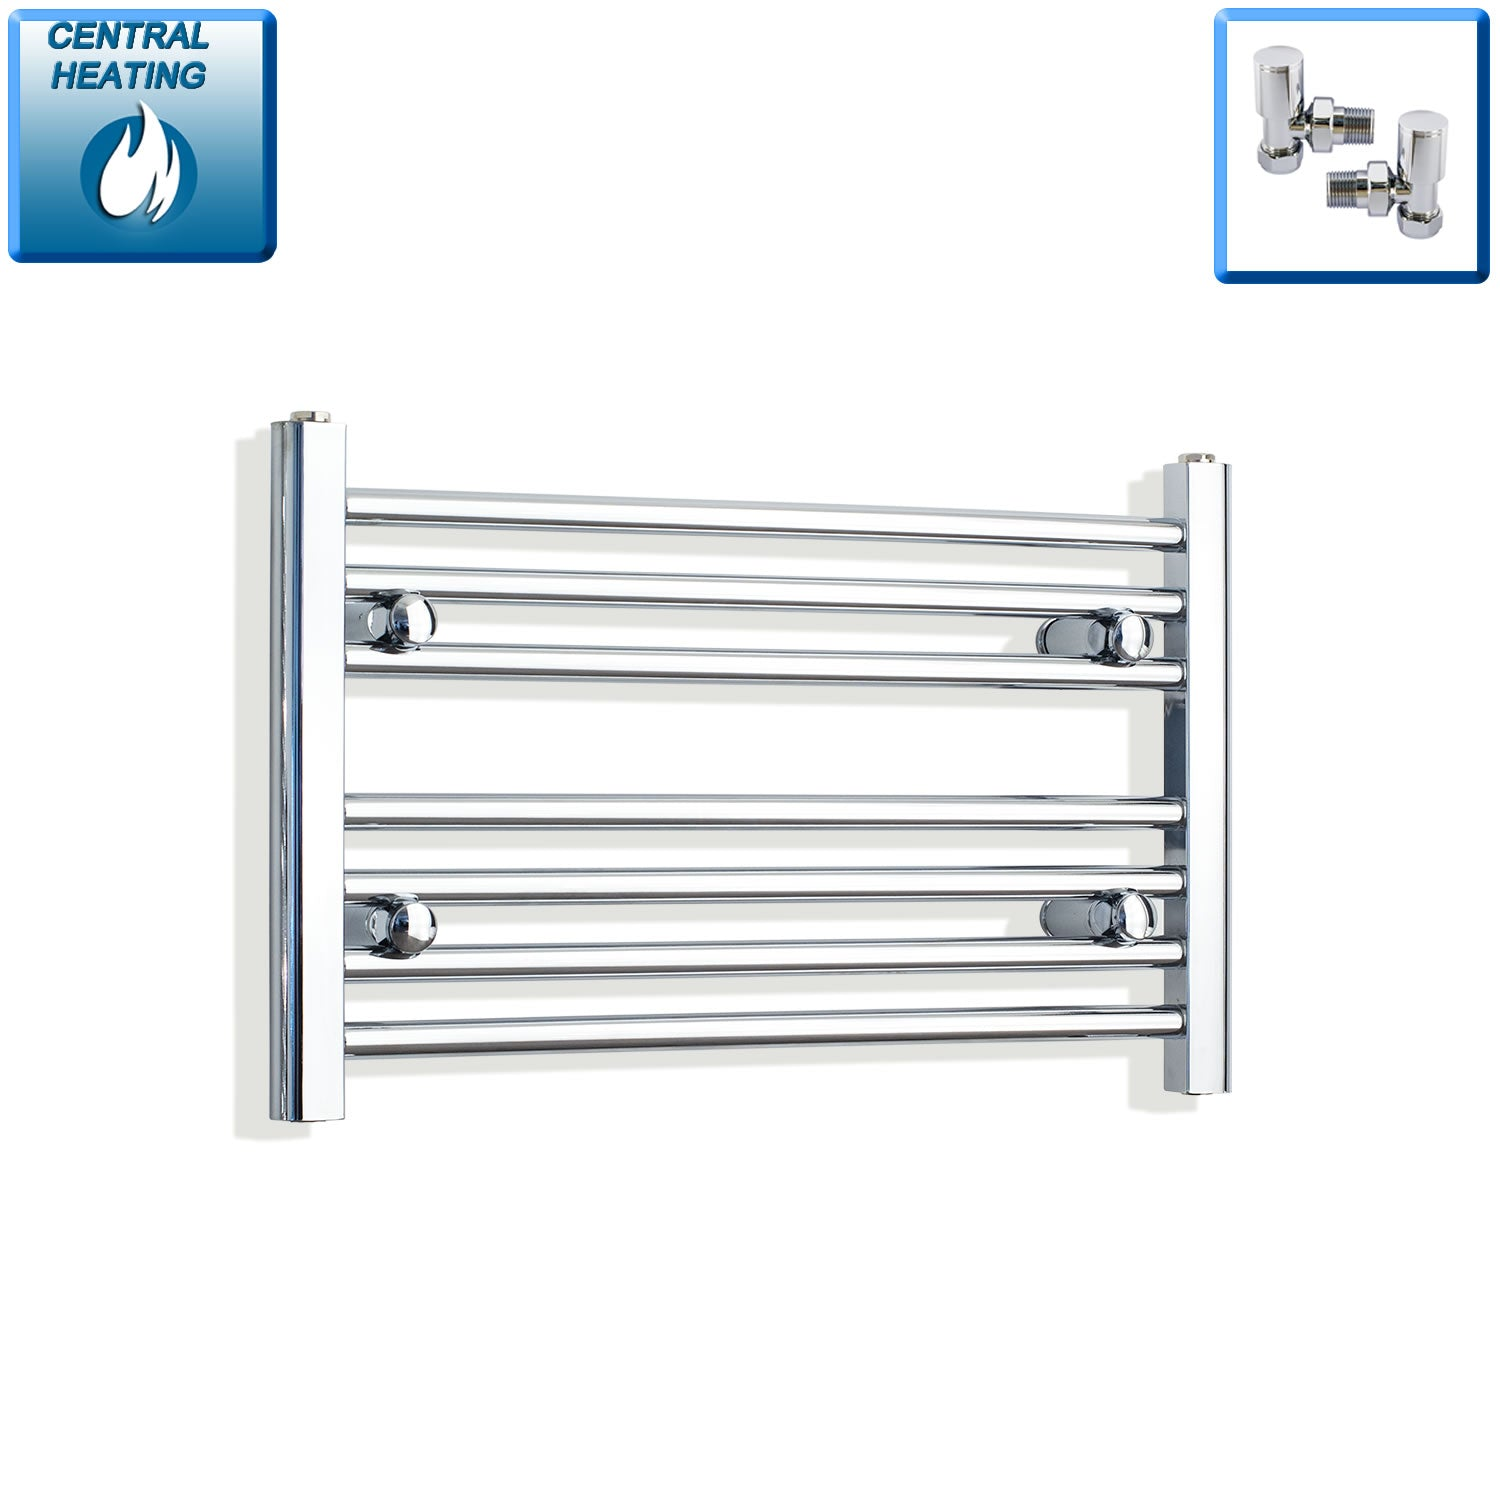 850mm Wide 400mm High Flat Chrome Heated Towel Rail Radiator HTR,With Angled Valve